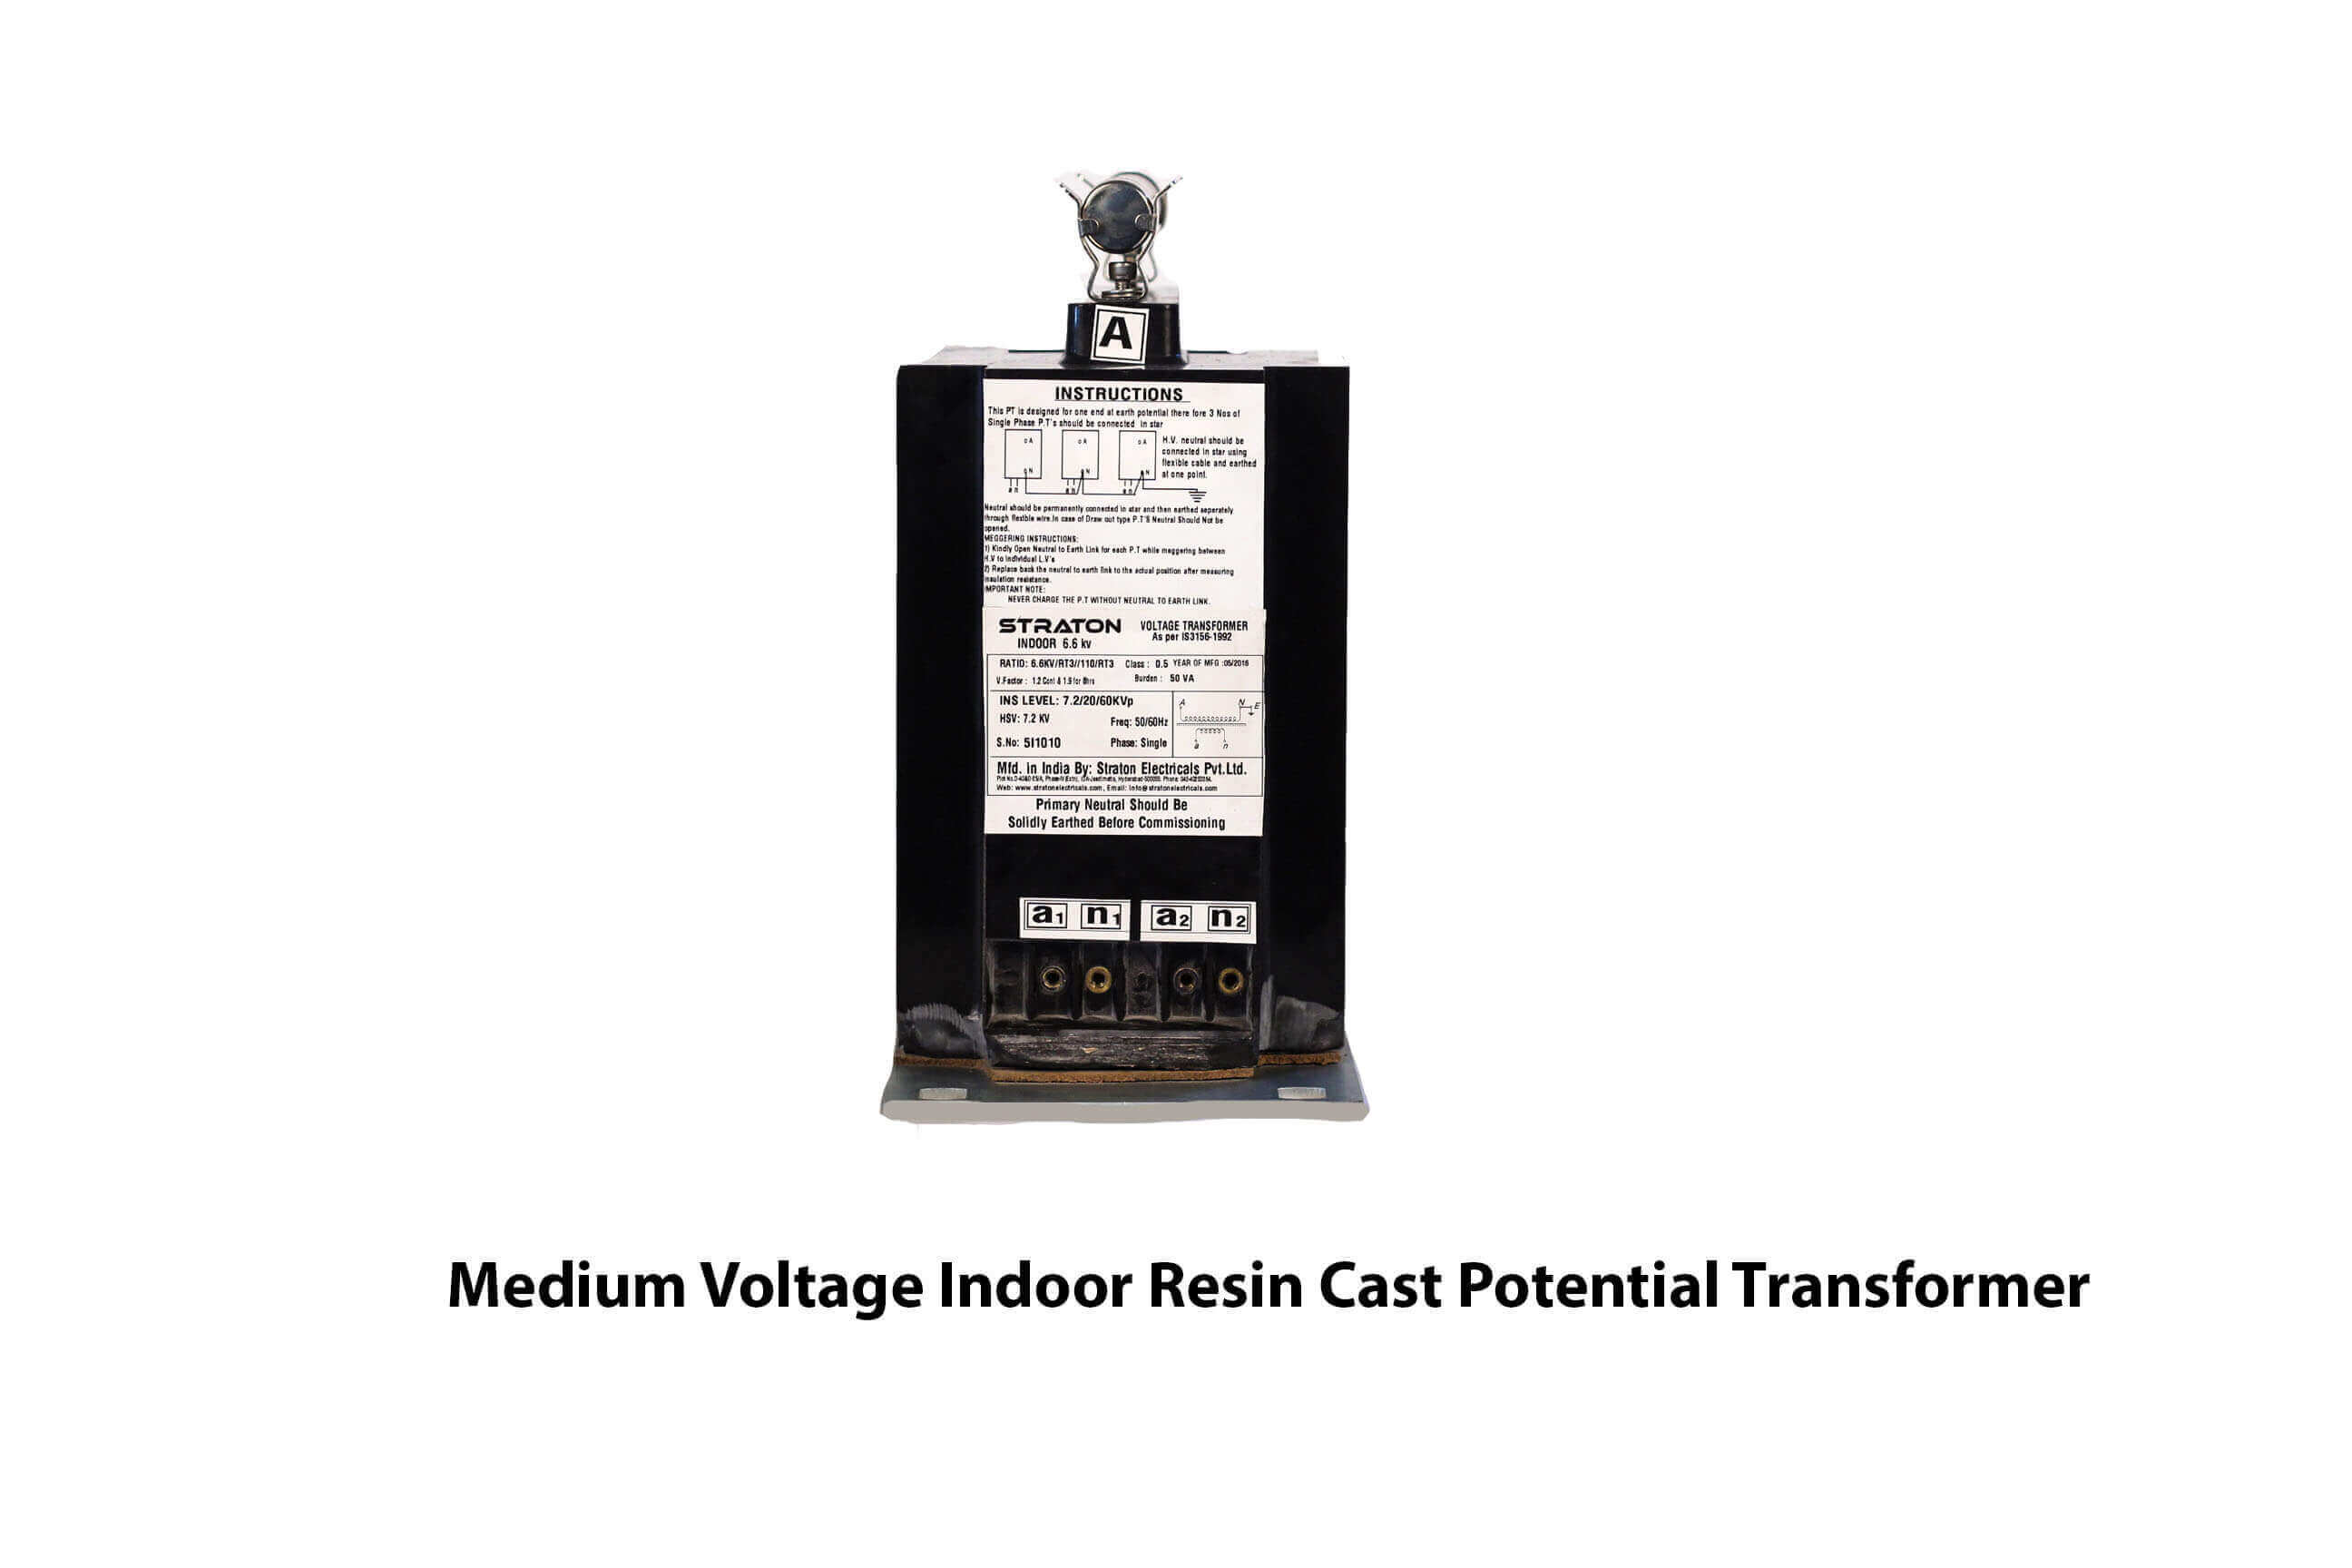 Medium Voltage Indoor Resin Cast Potential Transformer